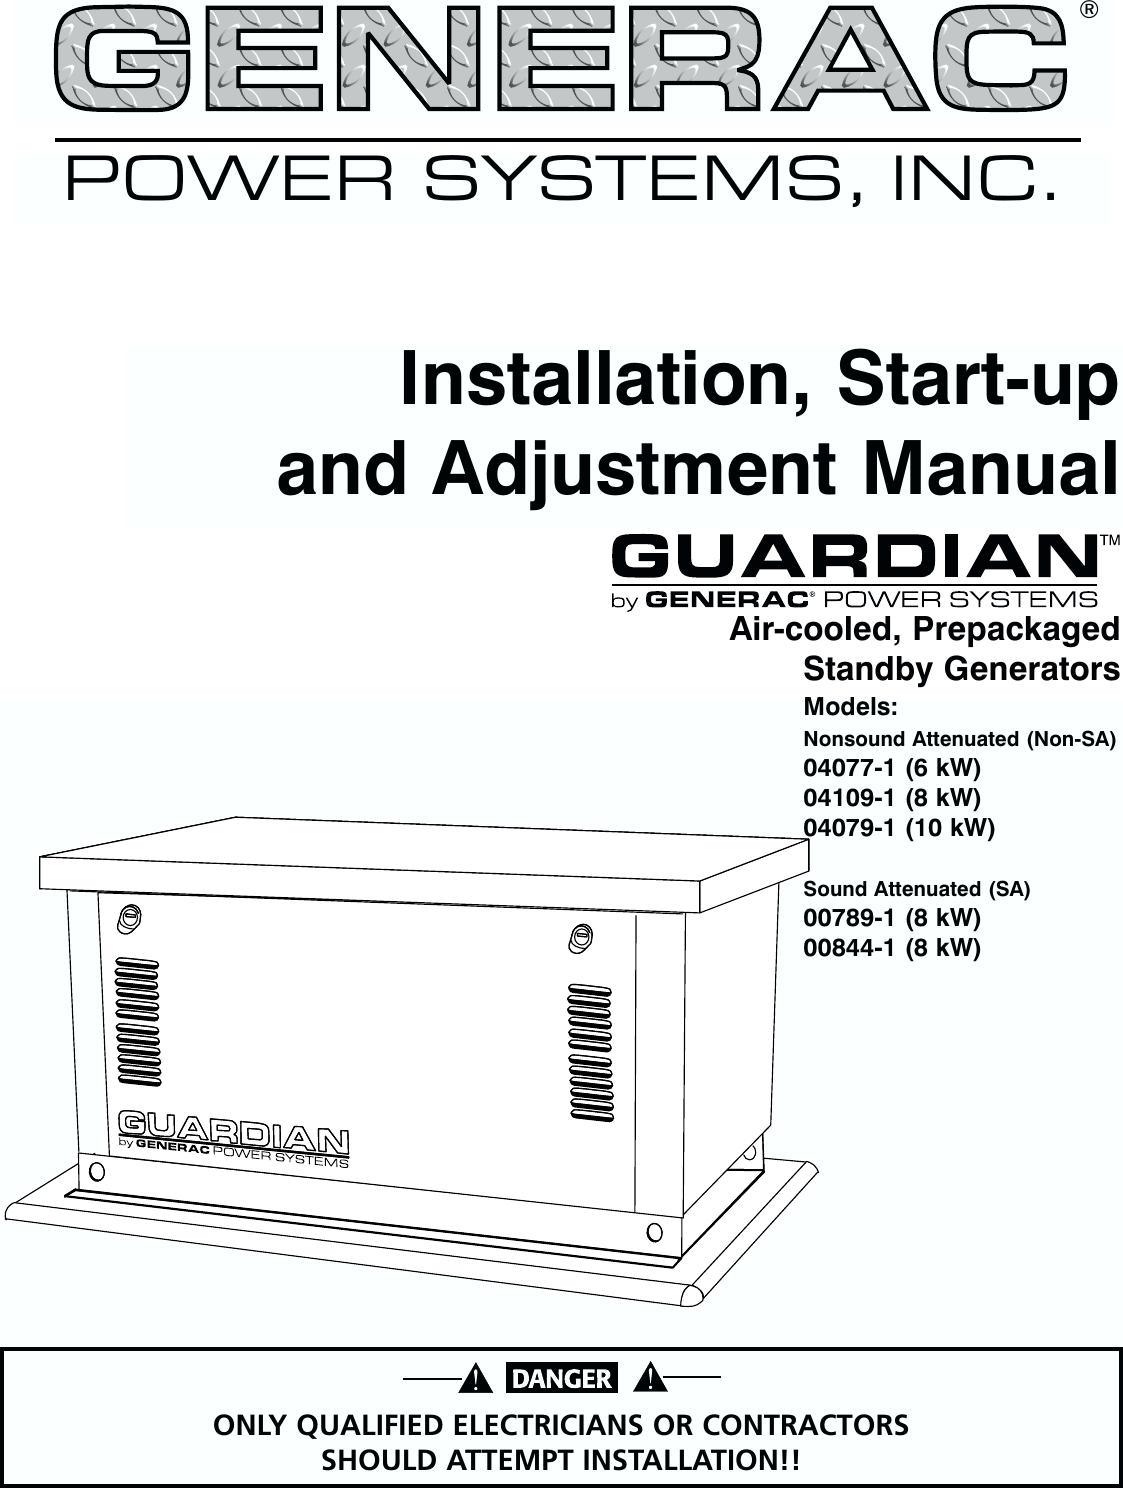 Generac 04077 01 04109 1 04079 00789 00844 Owners Manual Guardian 6 8 10kw Air Cooled Standby Generators Owner S C4219